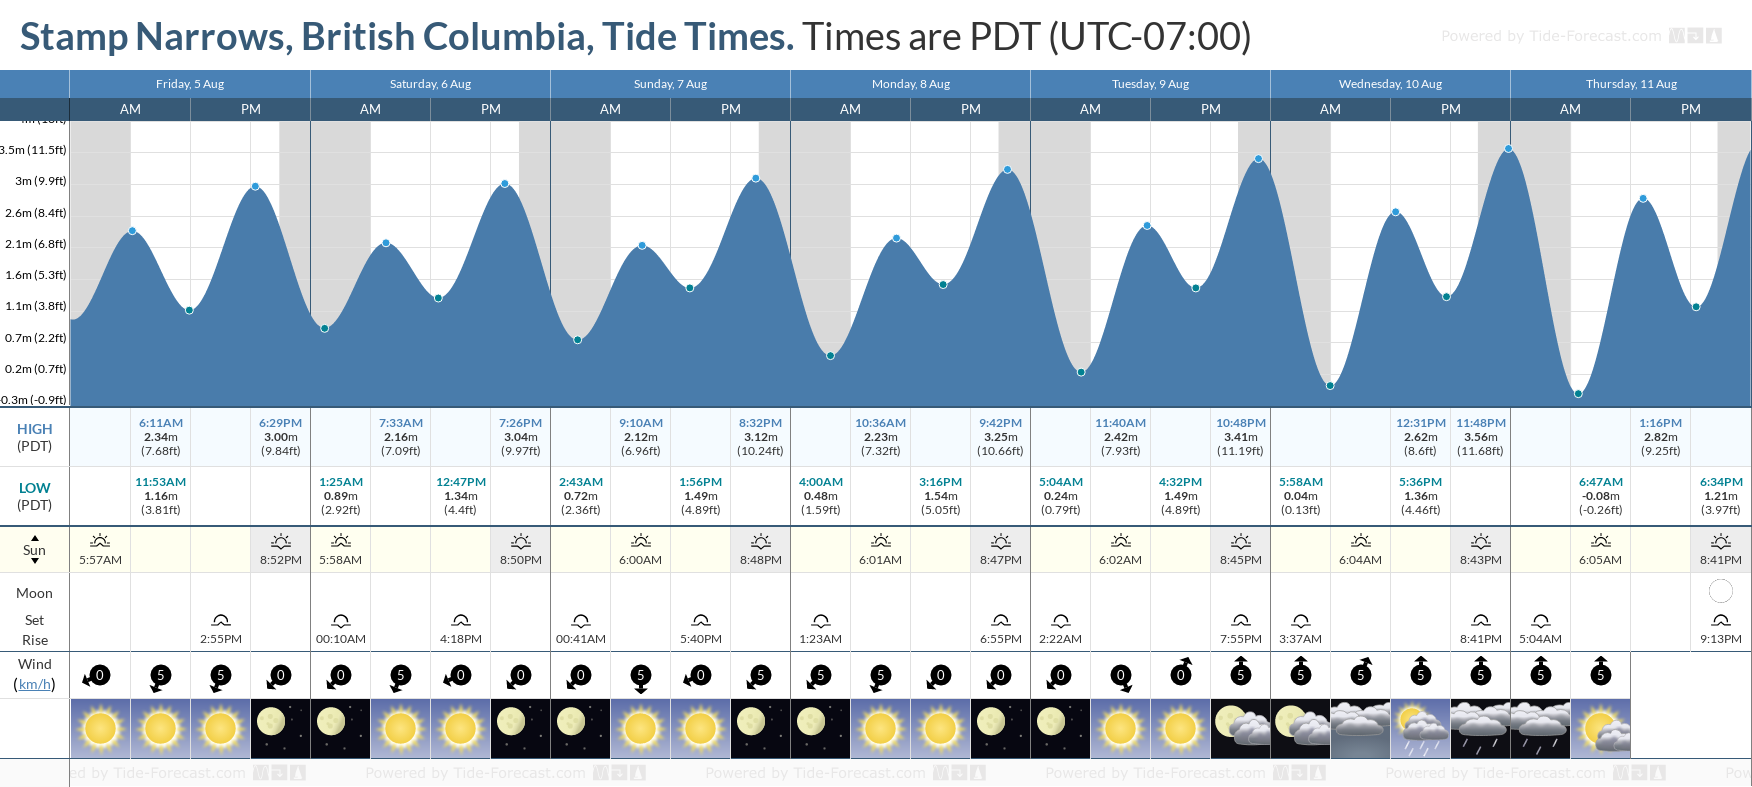 Stamp Narrows, British Columbia Tide Chart including high and low tide tide times for the next 7 days